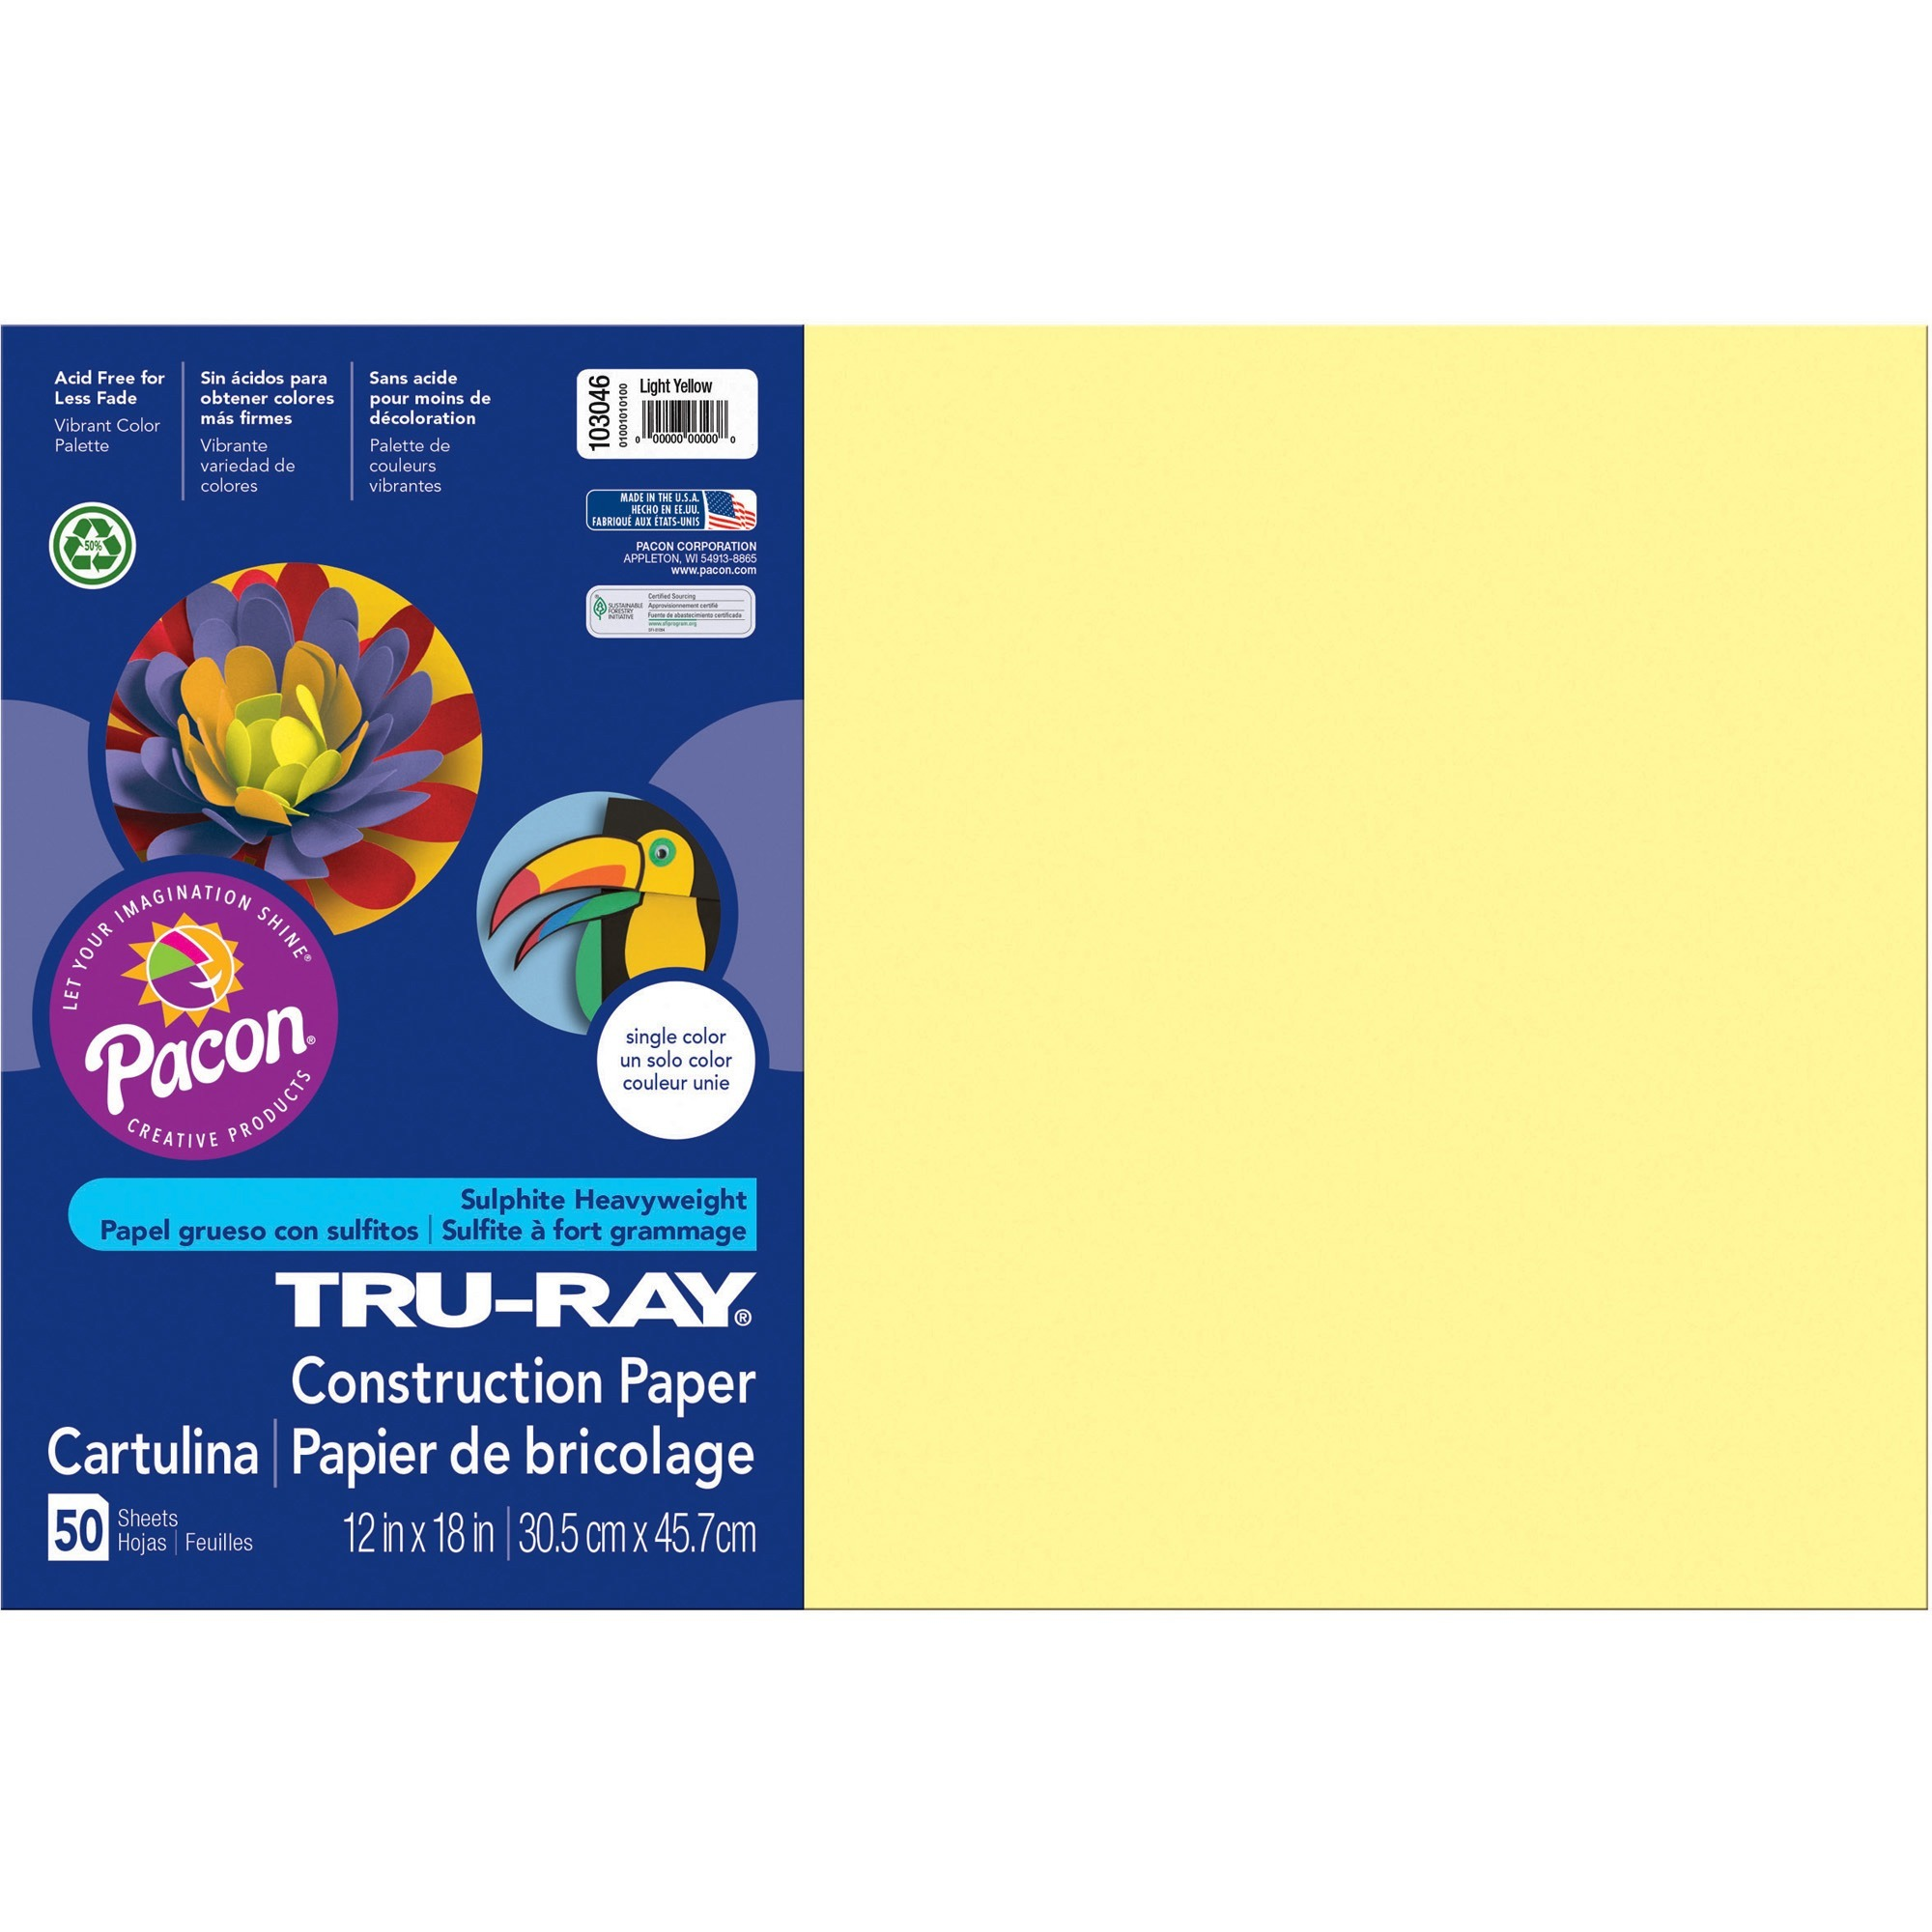 Tru-Ray, PAC103046, Heavyweight Construction Paper, 1 Pack, Light Yellow